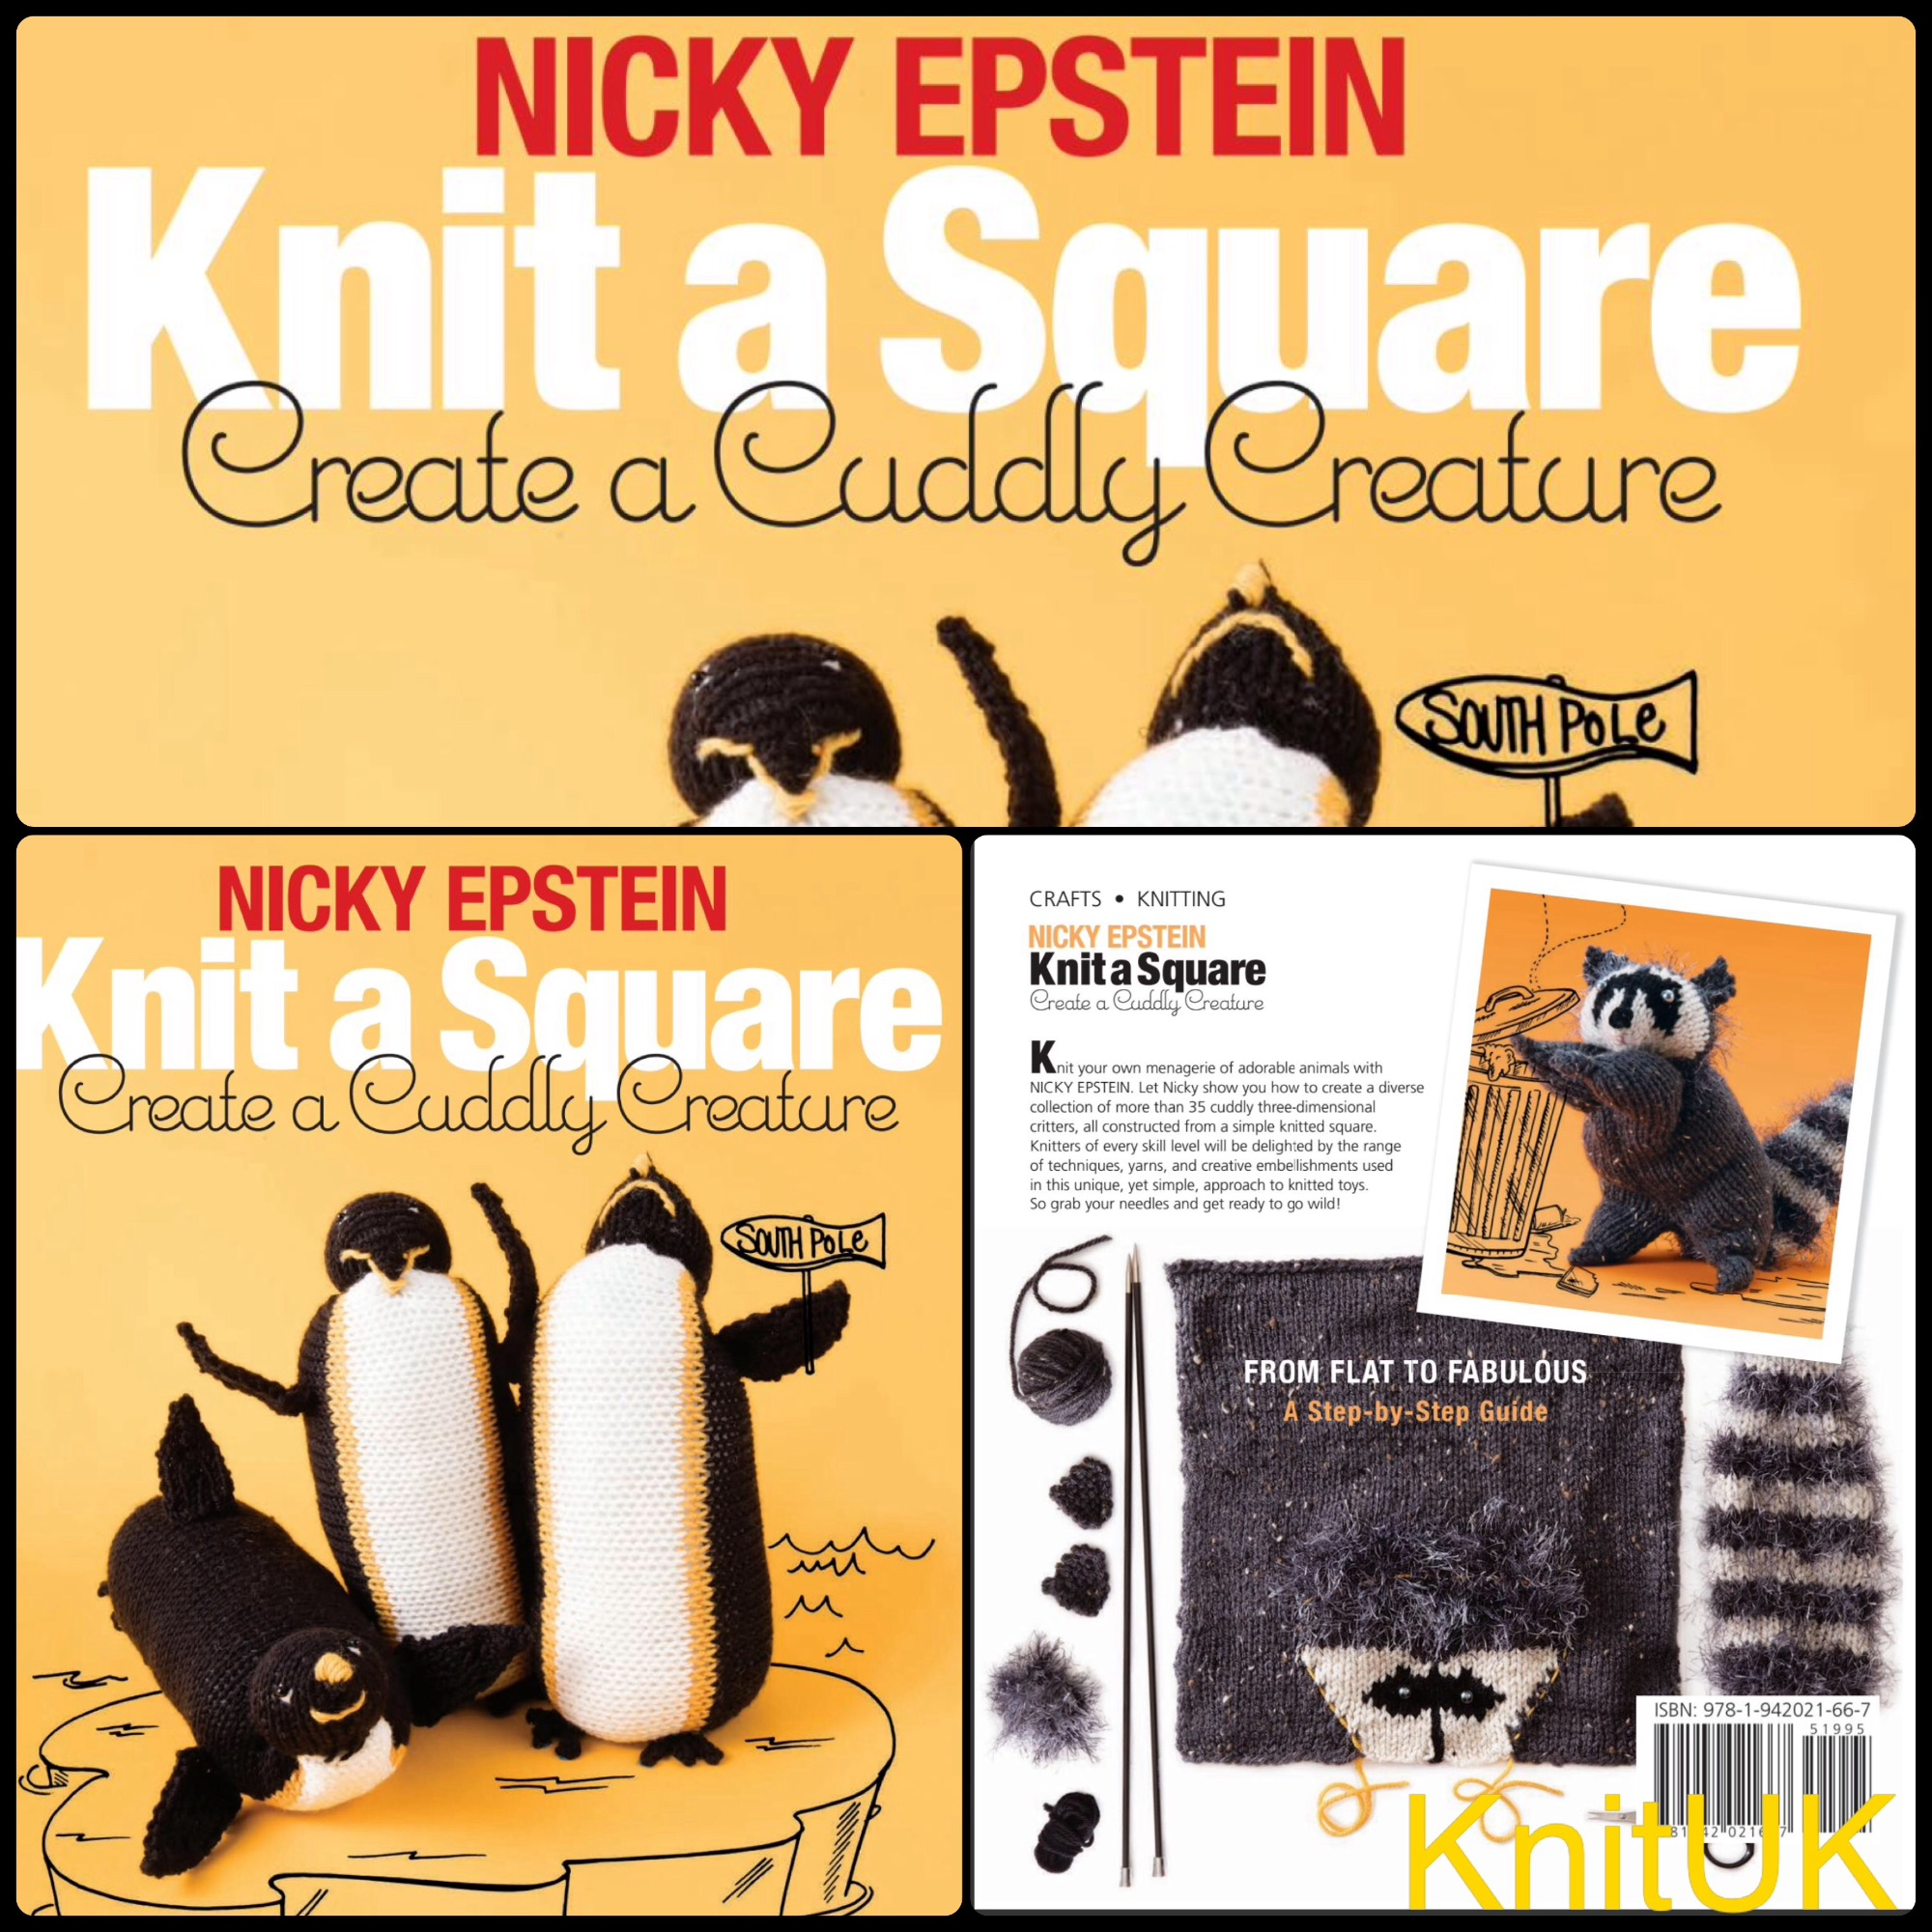 Nicky Epstein Knit A Square Create A Cuccly Creature Book Knituk